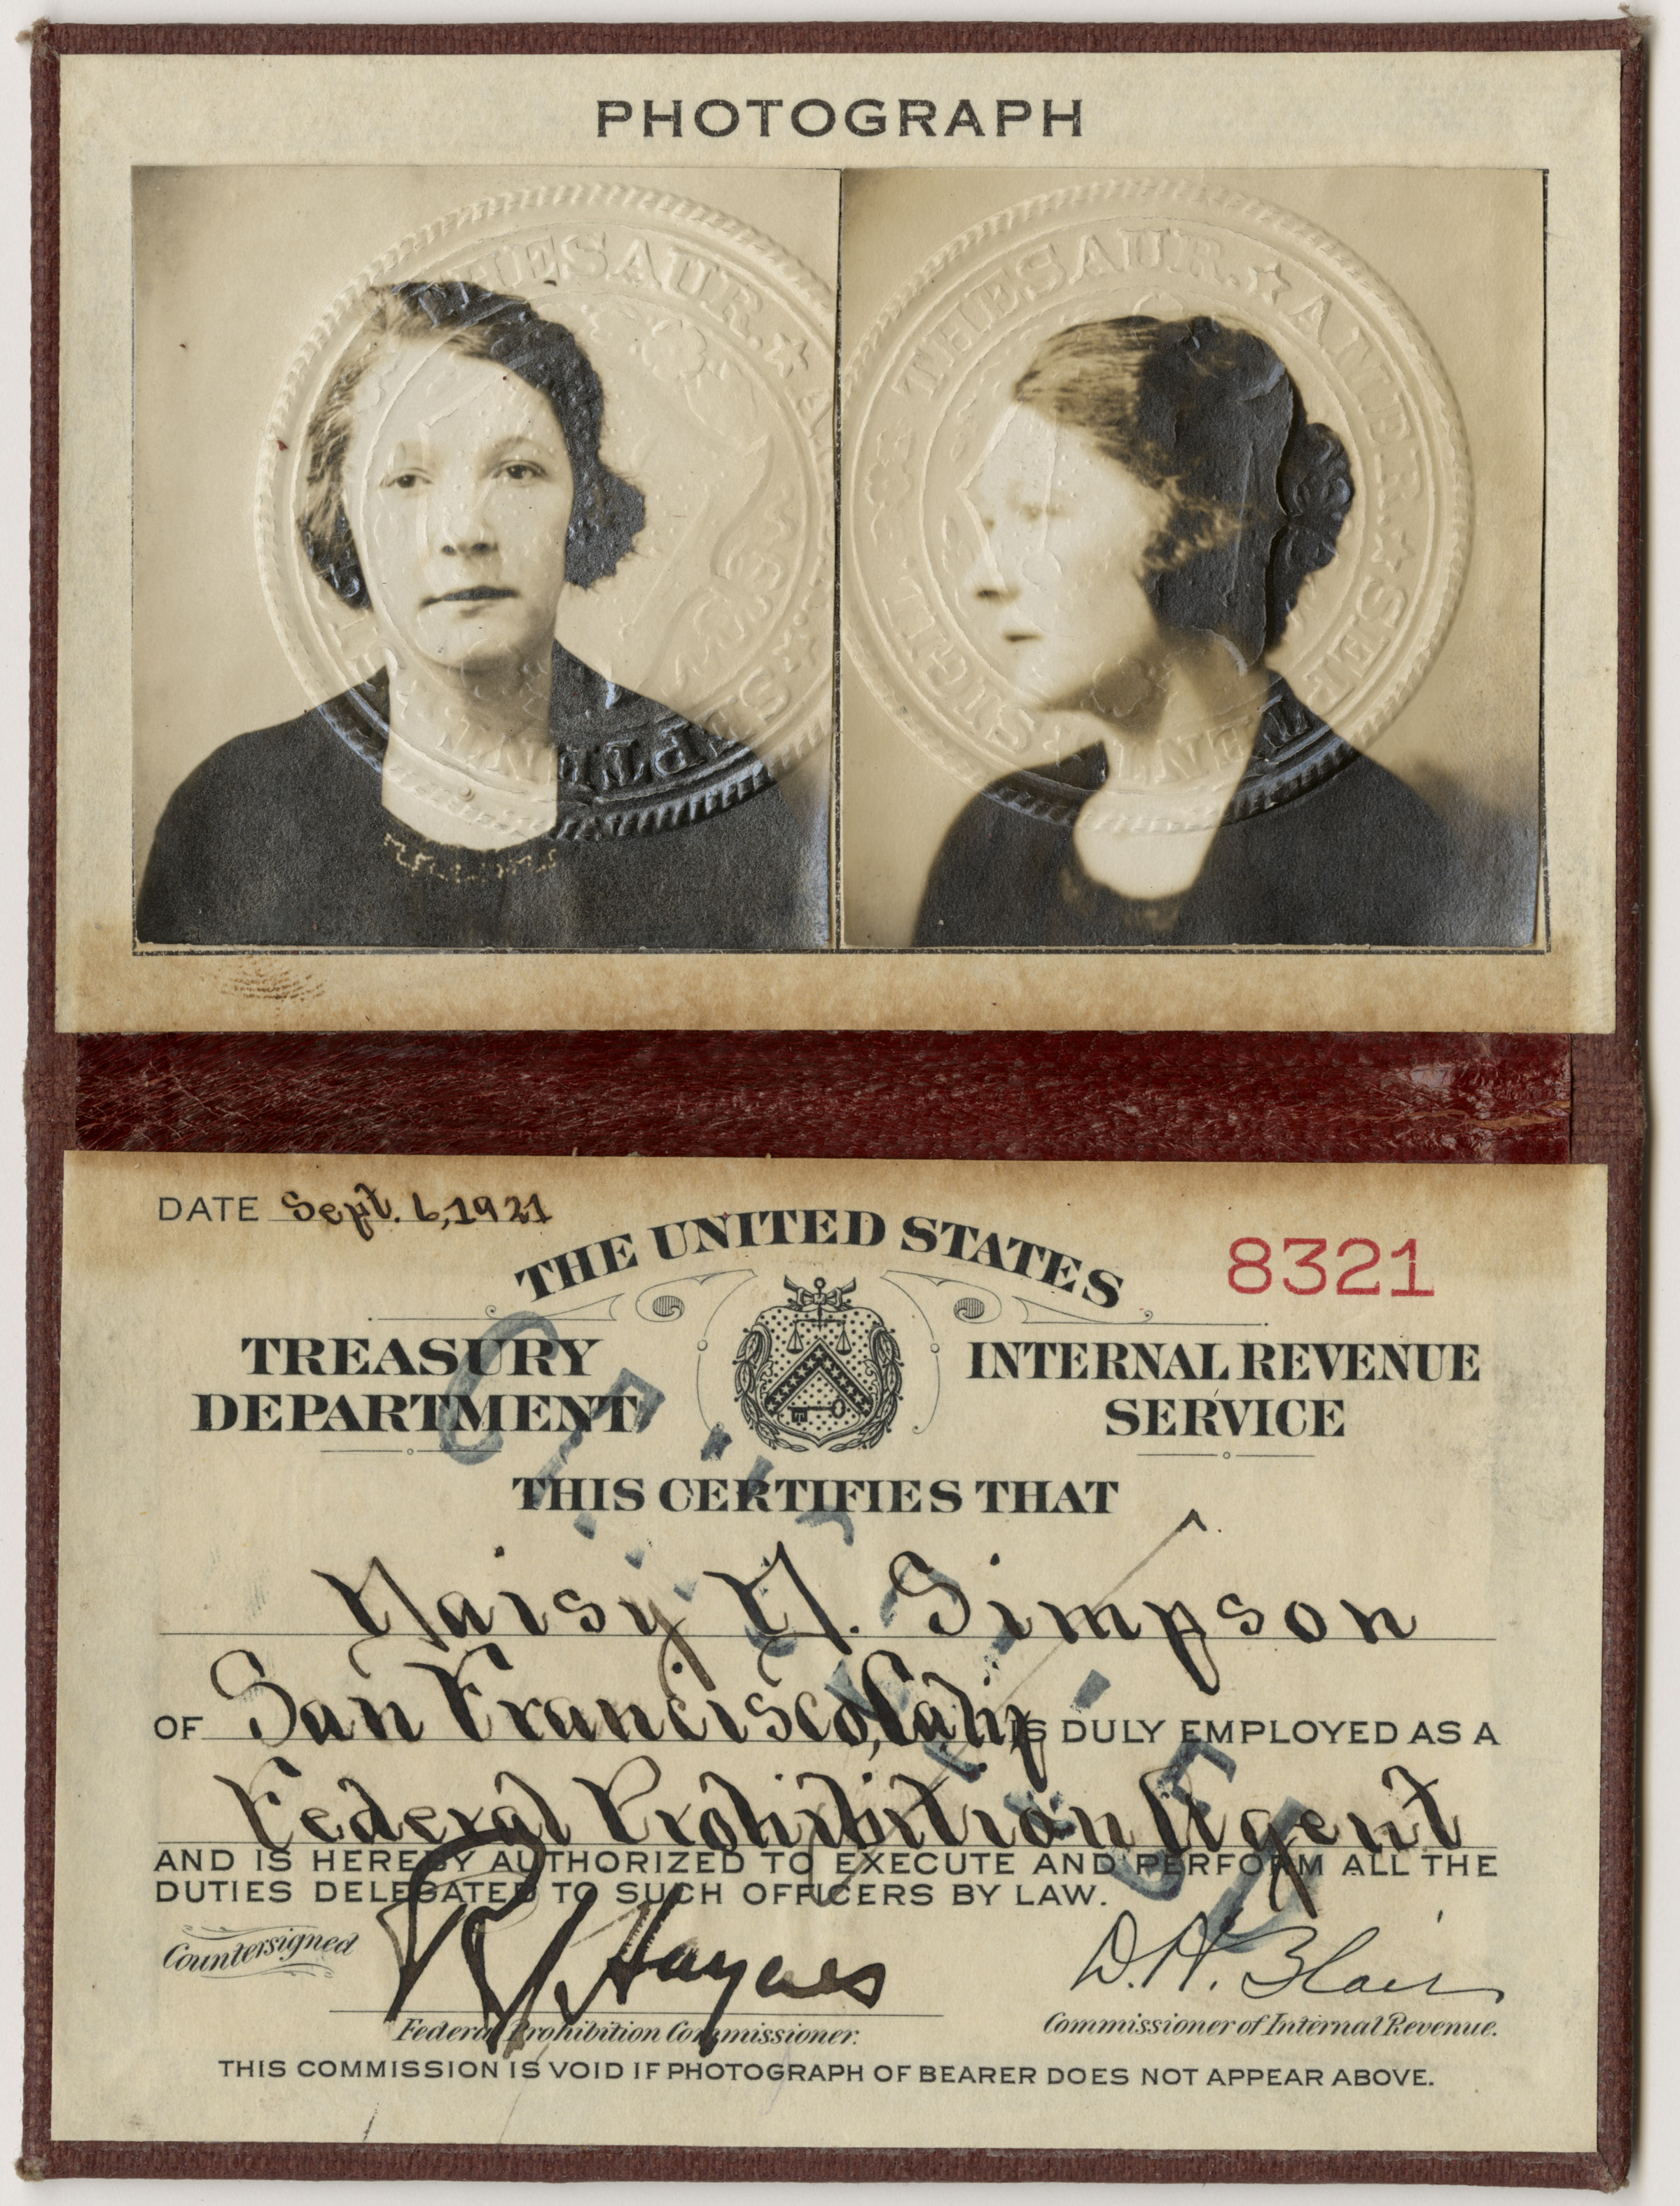 Daisy Simpson's Prohibition Unit ID, September 6, 1921. (National Archives Identifier 6238194)